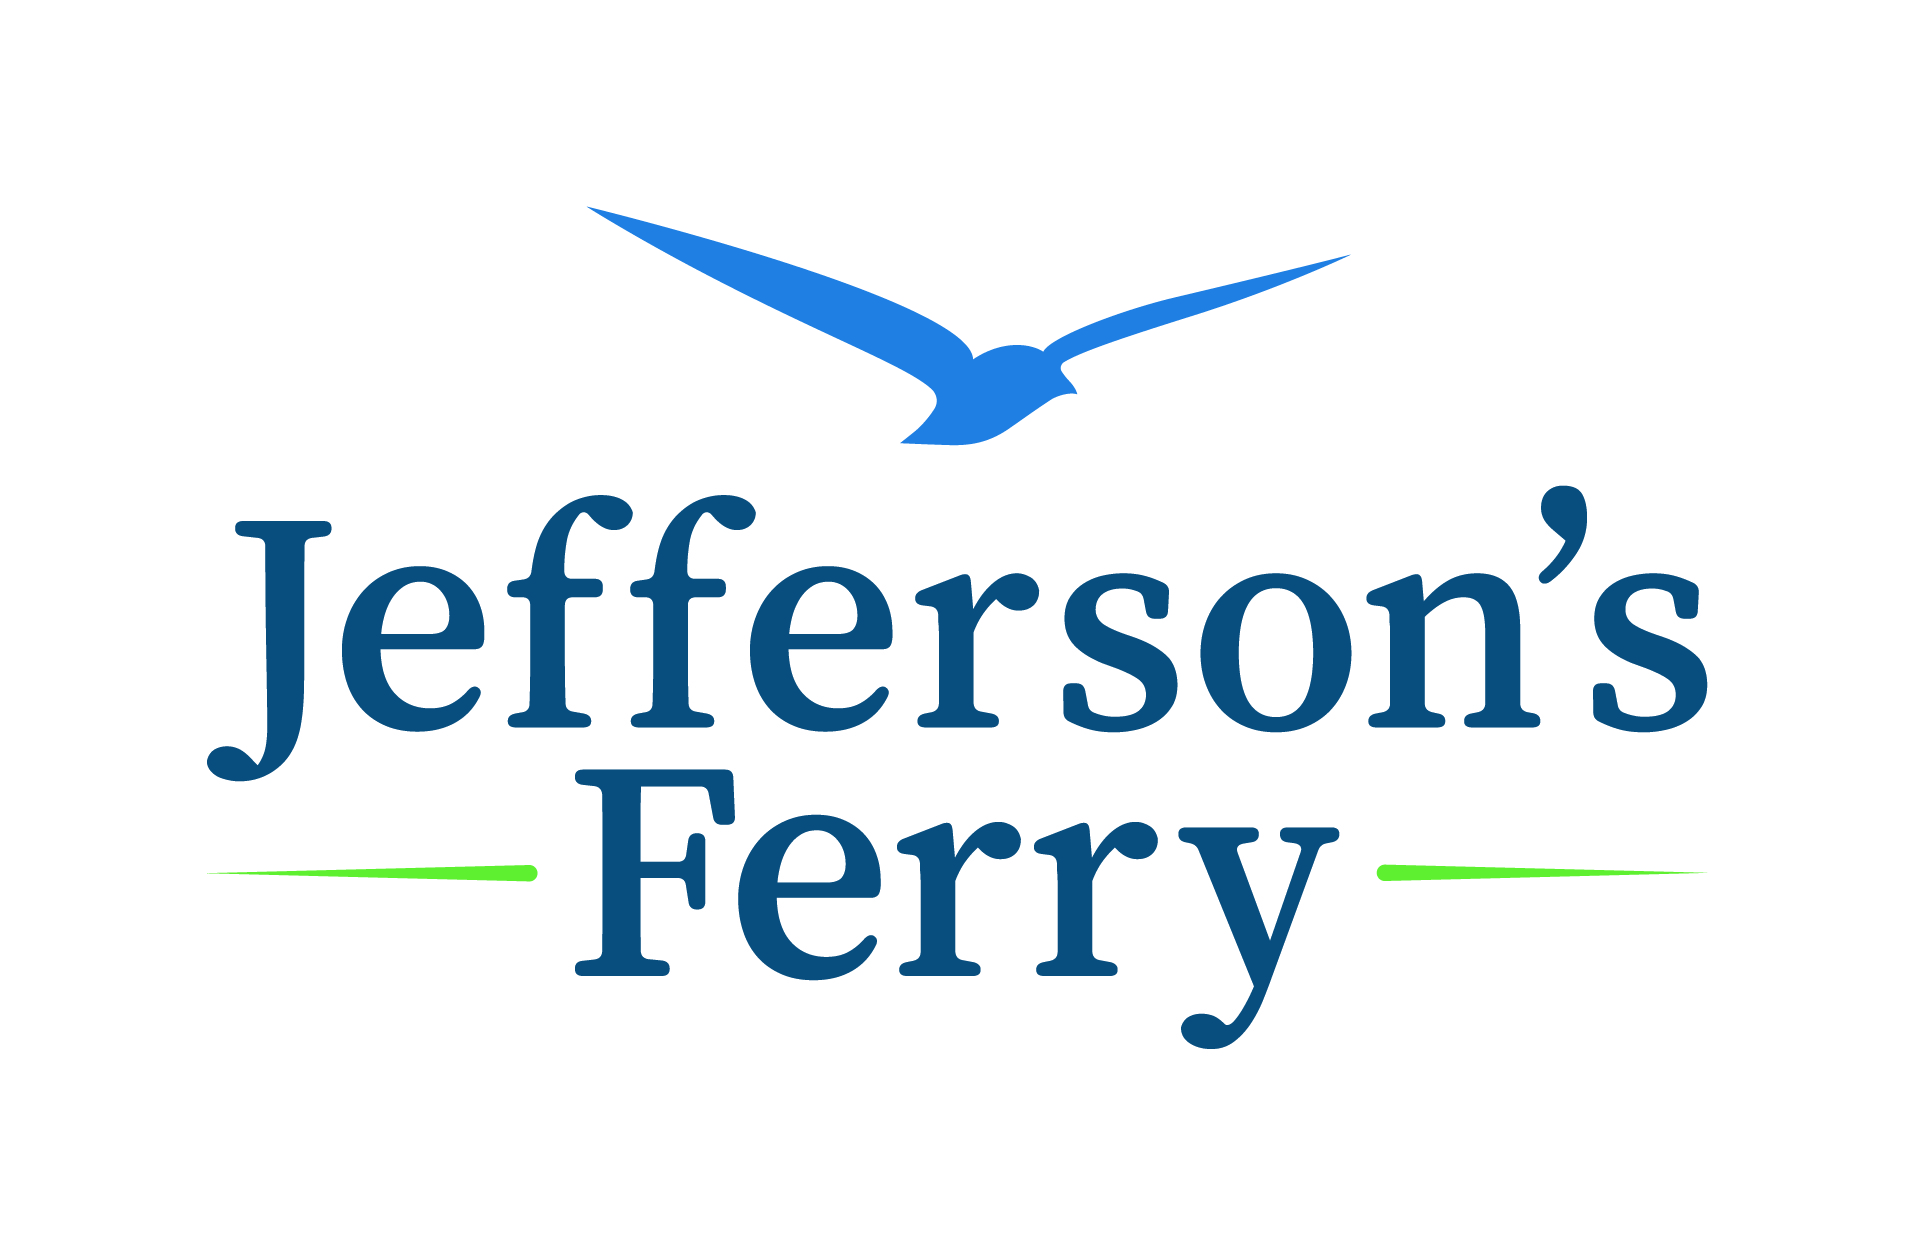 Jeffersons Ferry